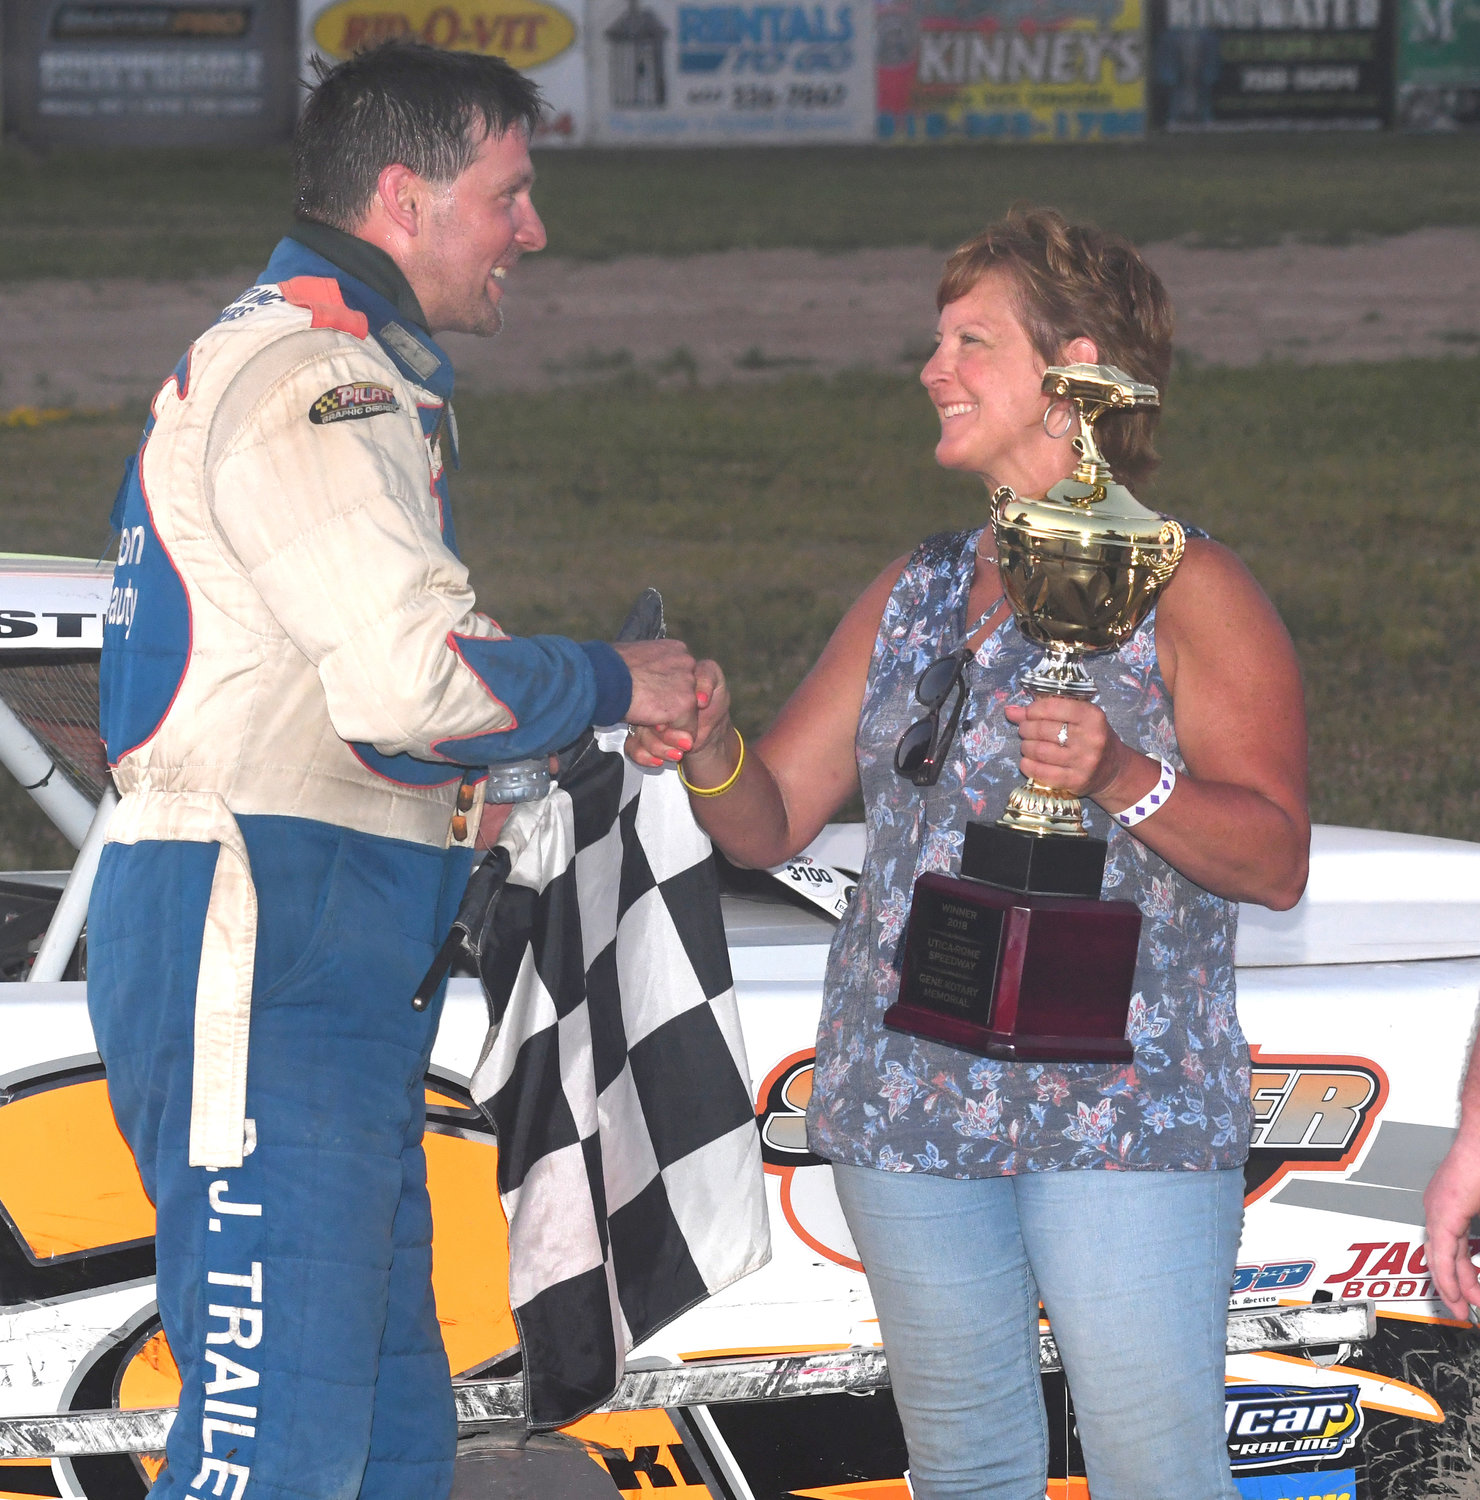 GENE KOTARY WINNER — Pete Stefanski of Westmoreland, winner of the Gene Kotary Memorial Pro Stock challenge, gets congratulated by Marcia Kotary, wife of the late Gene Kotary in victory lane at Utica-Rome Speedway.